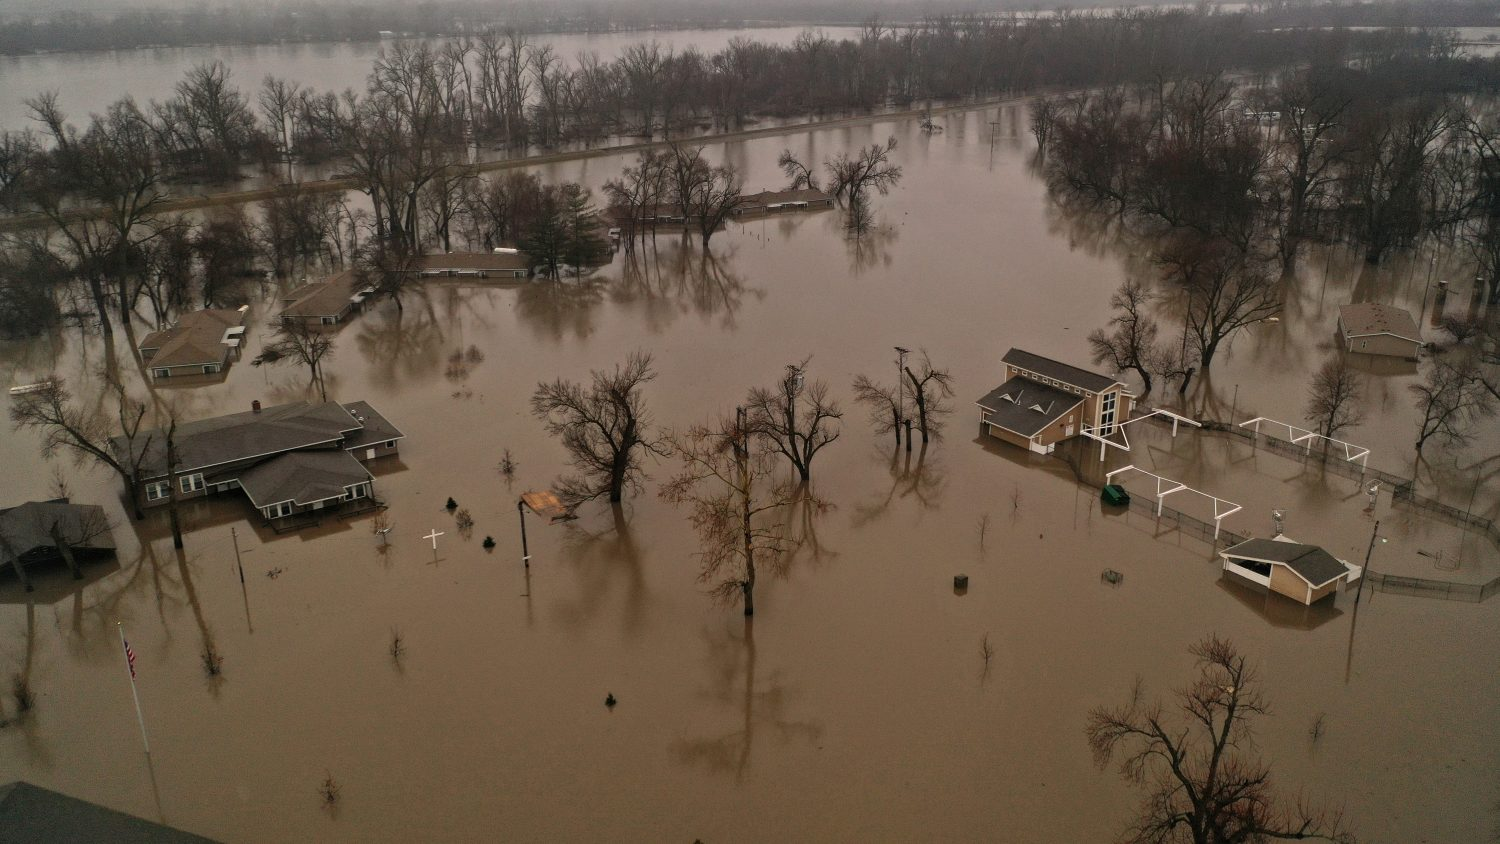 A flooded parcel of land along the Platte River is pictured in this aerial photograph at La Platte, south of Omaha, Nebraska, U.S. March 19, 2019. REUTERS/Drone Base